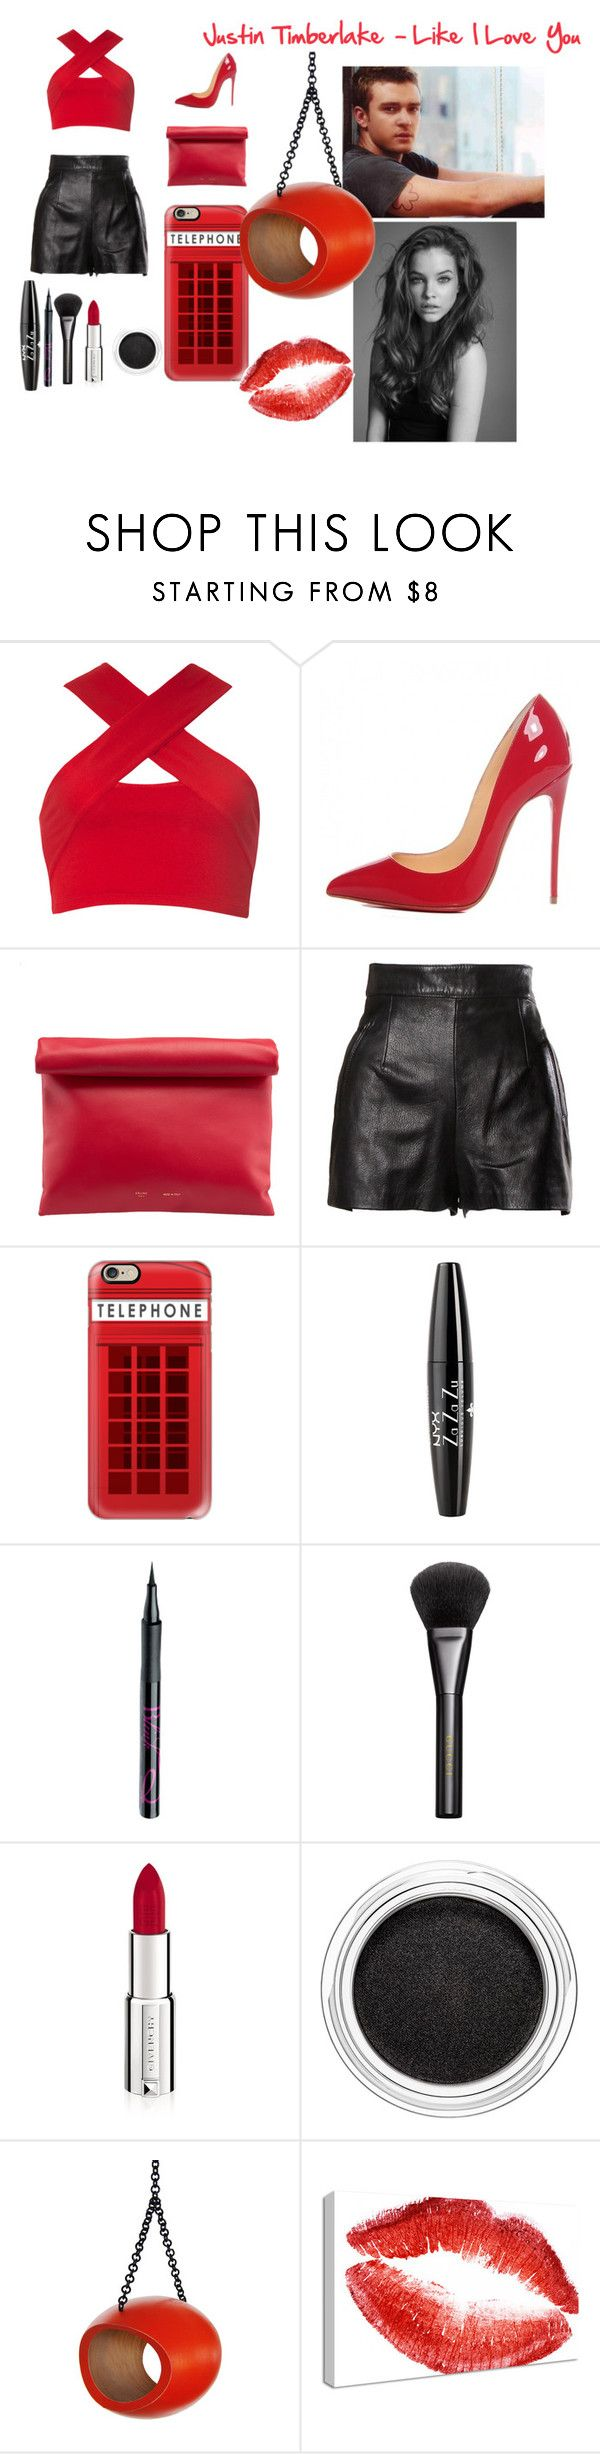 """Justin Timberlake - Like I Love You"" by sofy-styles1 ❤ liked on Polyvore featuring Motel, Christian Louboutin, Moschino, Casetify, NYX, Barry M, Gucci, Givenchy, Clarins and Britney Spears"